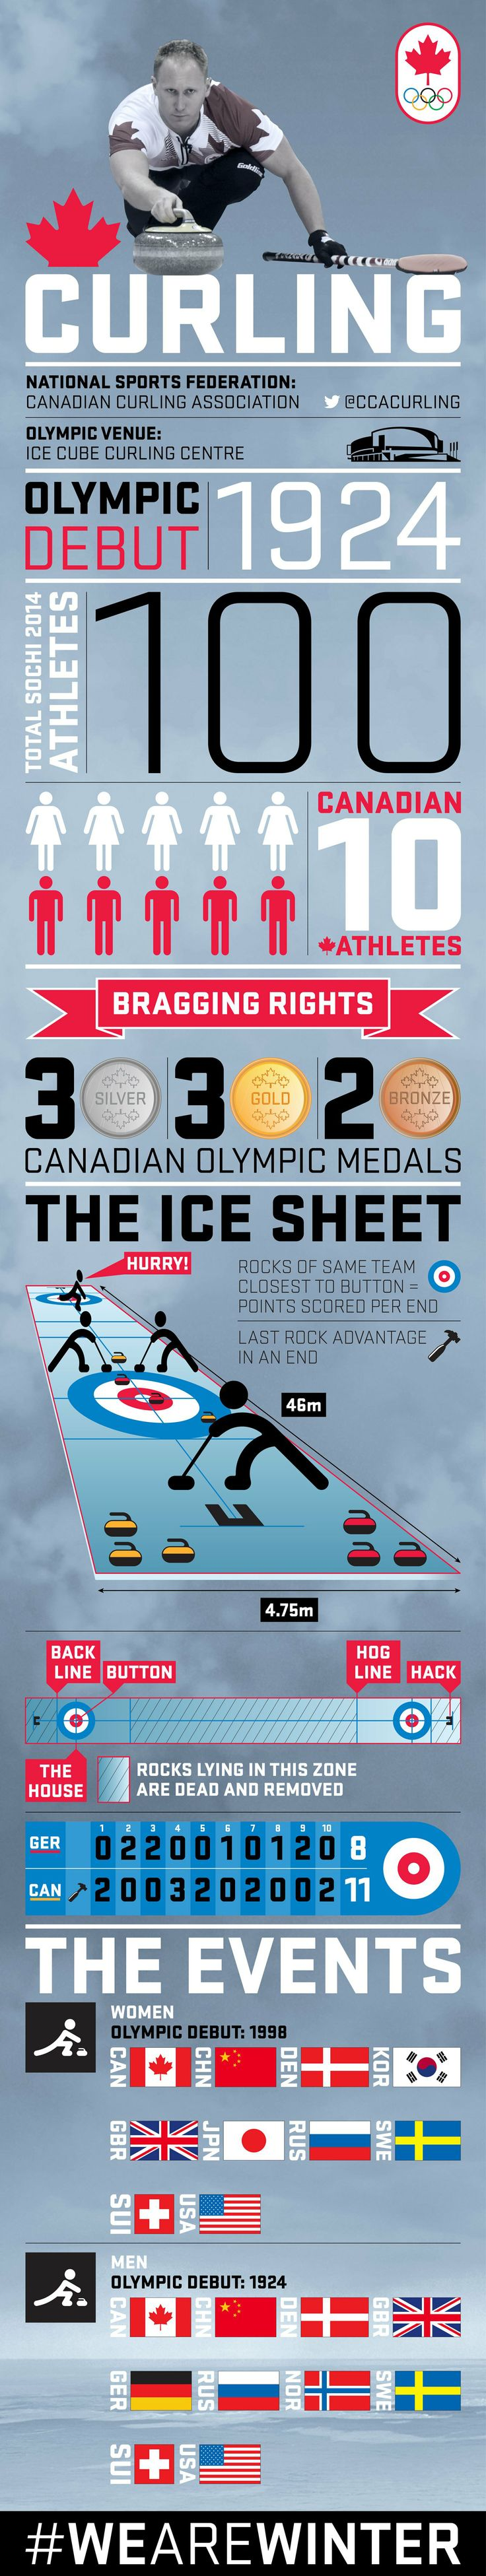 Olympic Curling Infographic